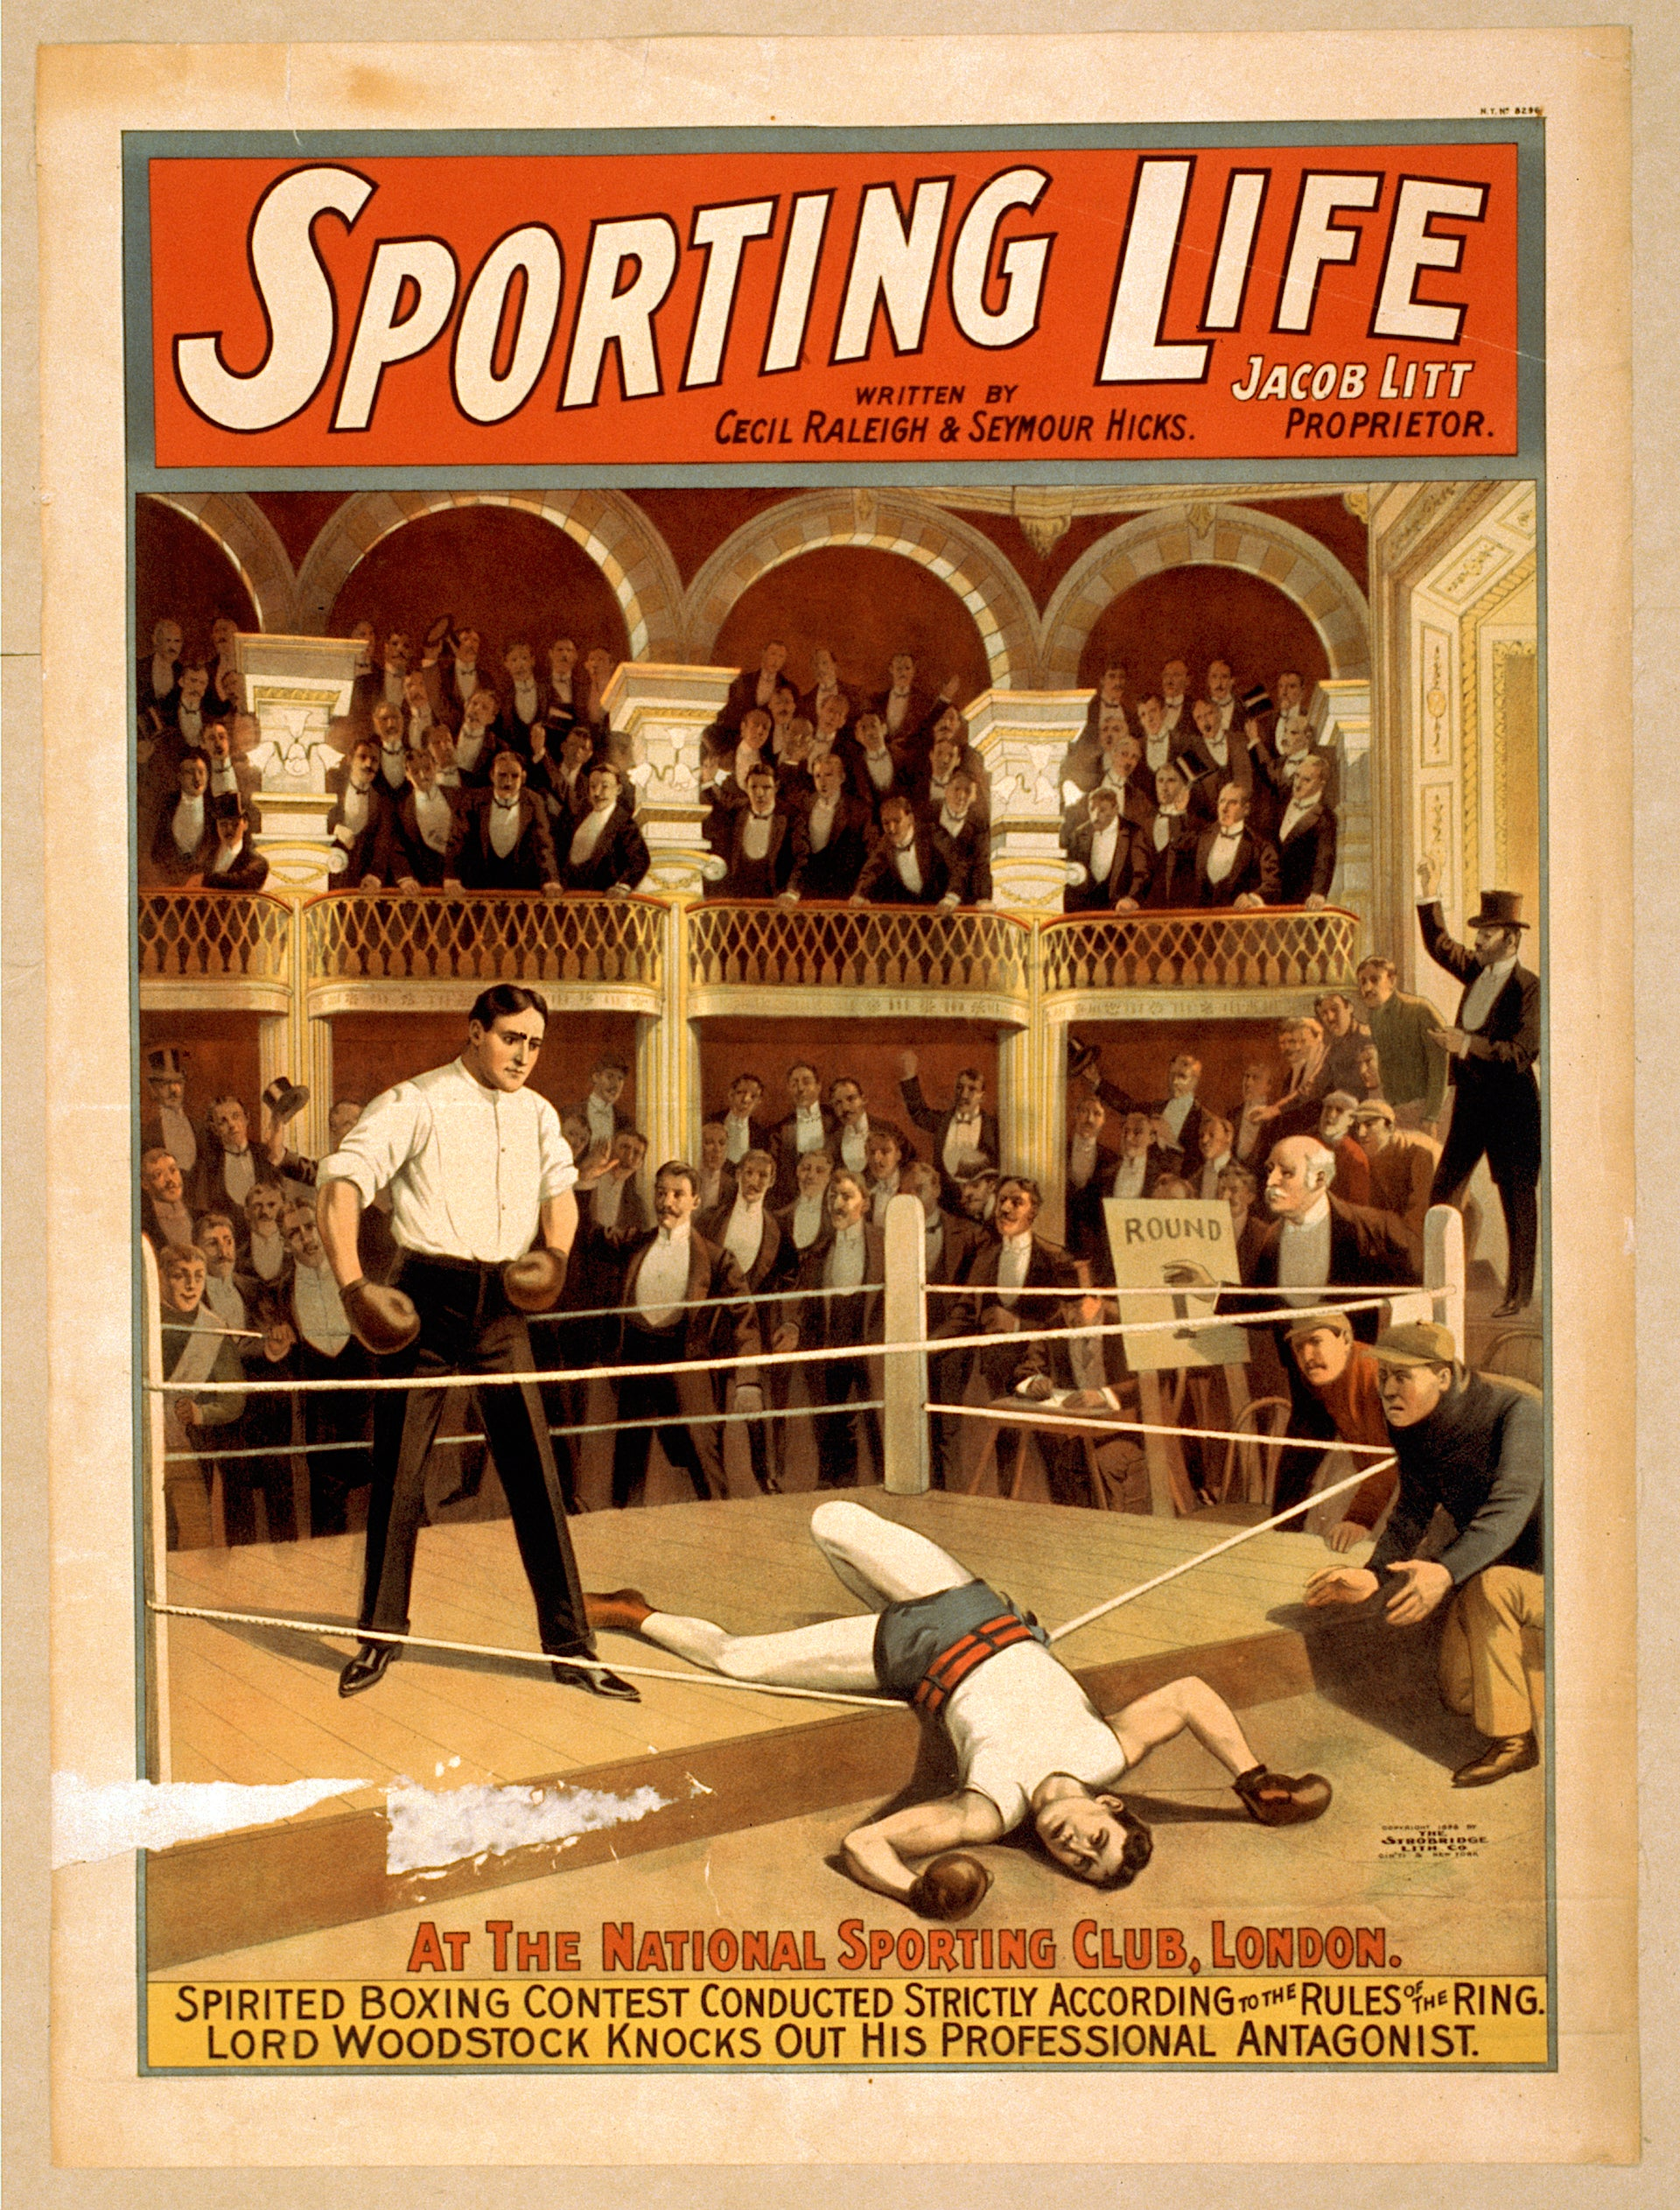 """Spirited boxing contest conducted strictly according to the rules of the ring. Lord Woodstock knocks out his professional antagonist. At the National Sporting Club, London. Created and """"copyright 1898 by The Strobridge Lith. Co., Cin'ti &  New York."""""""